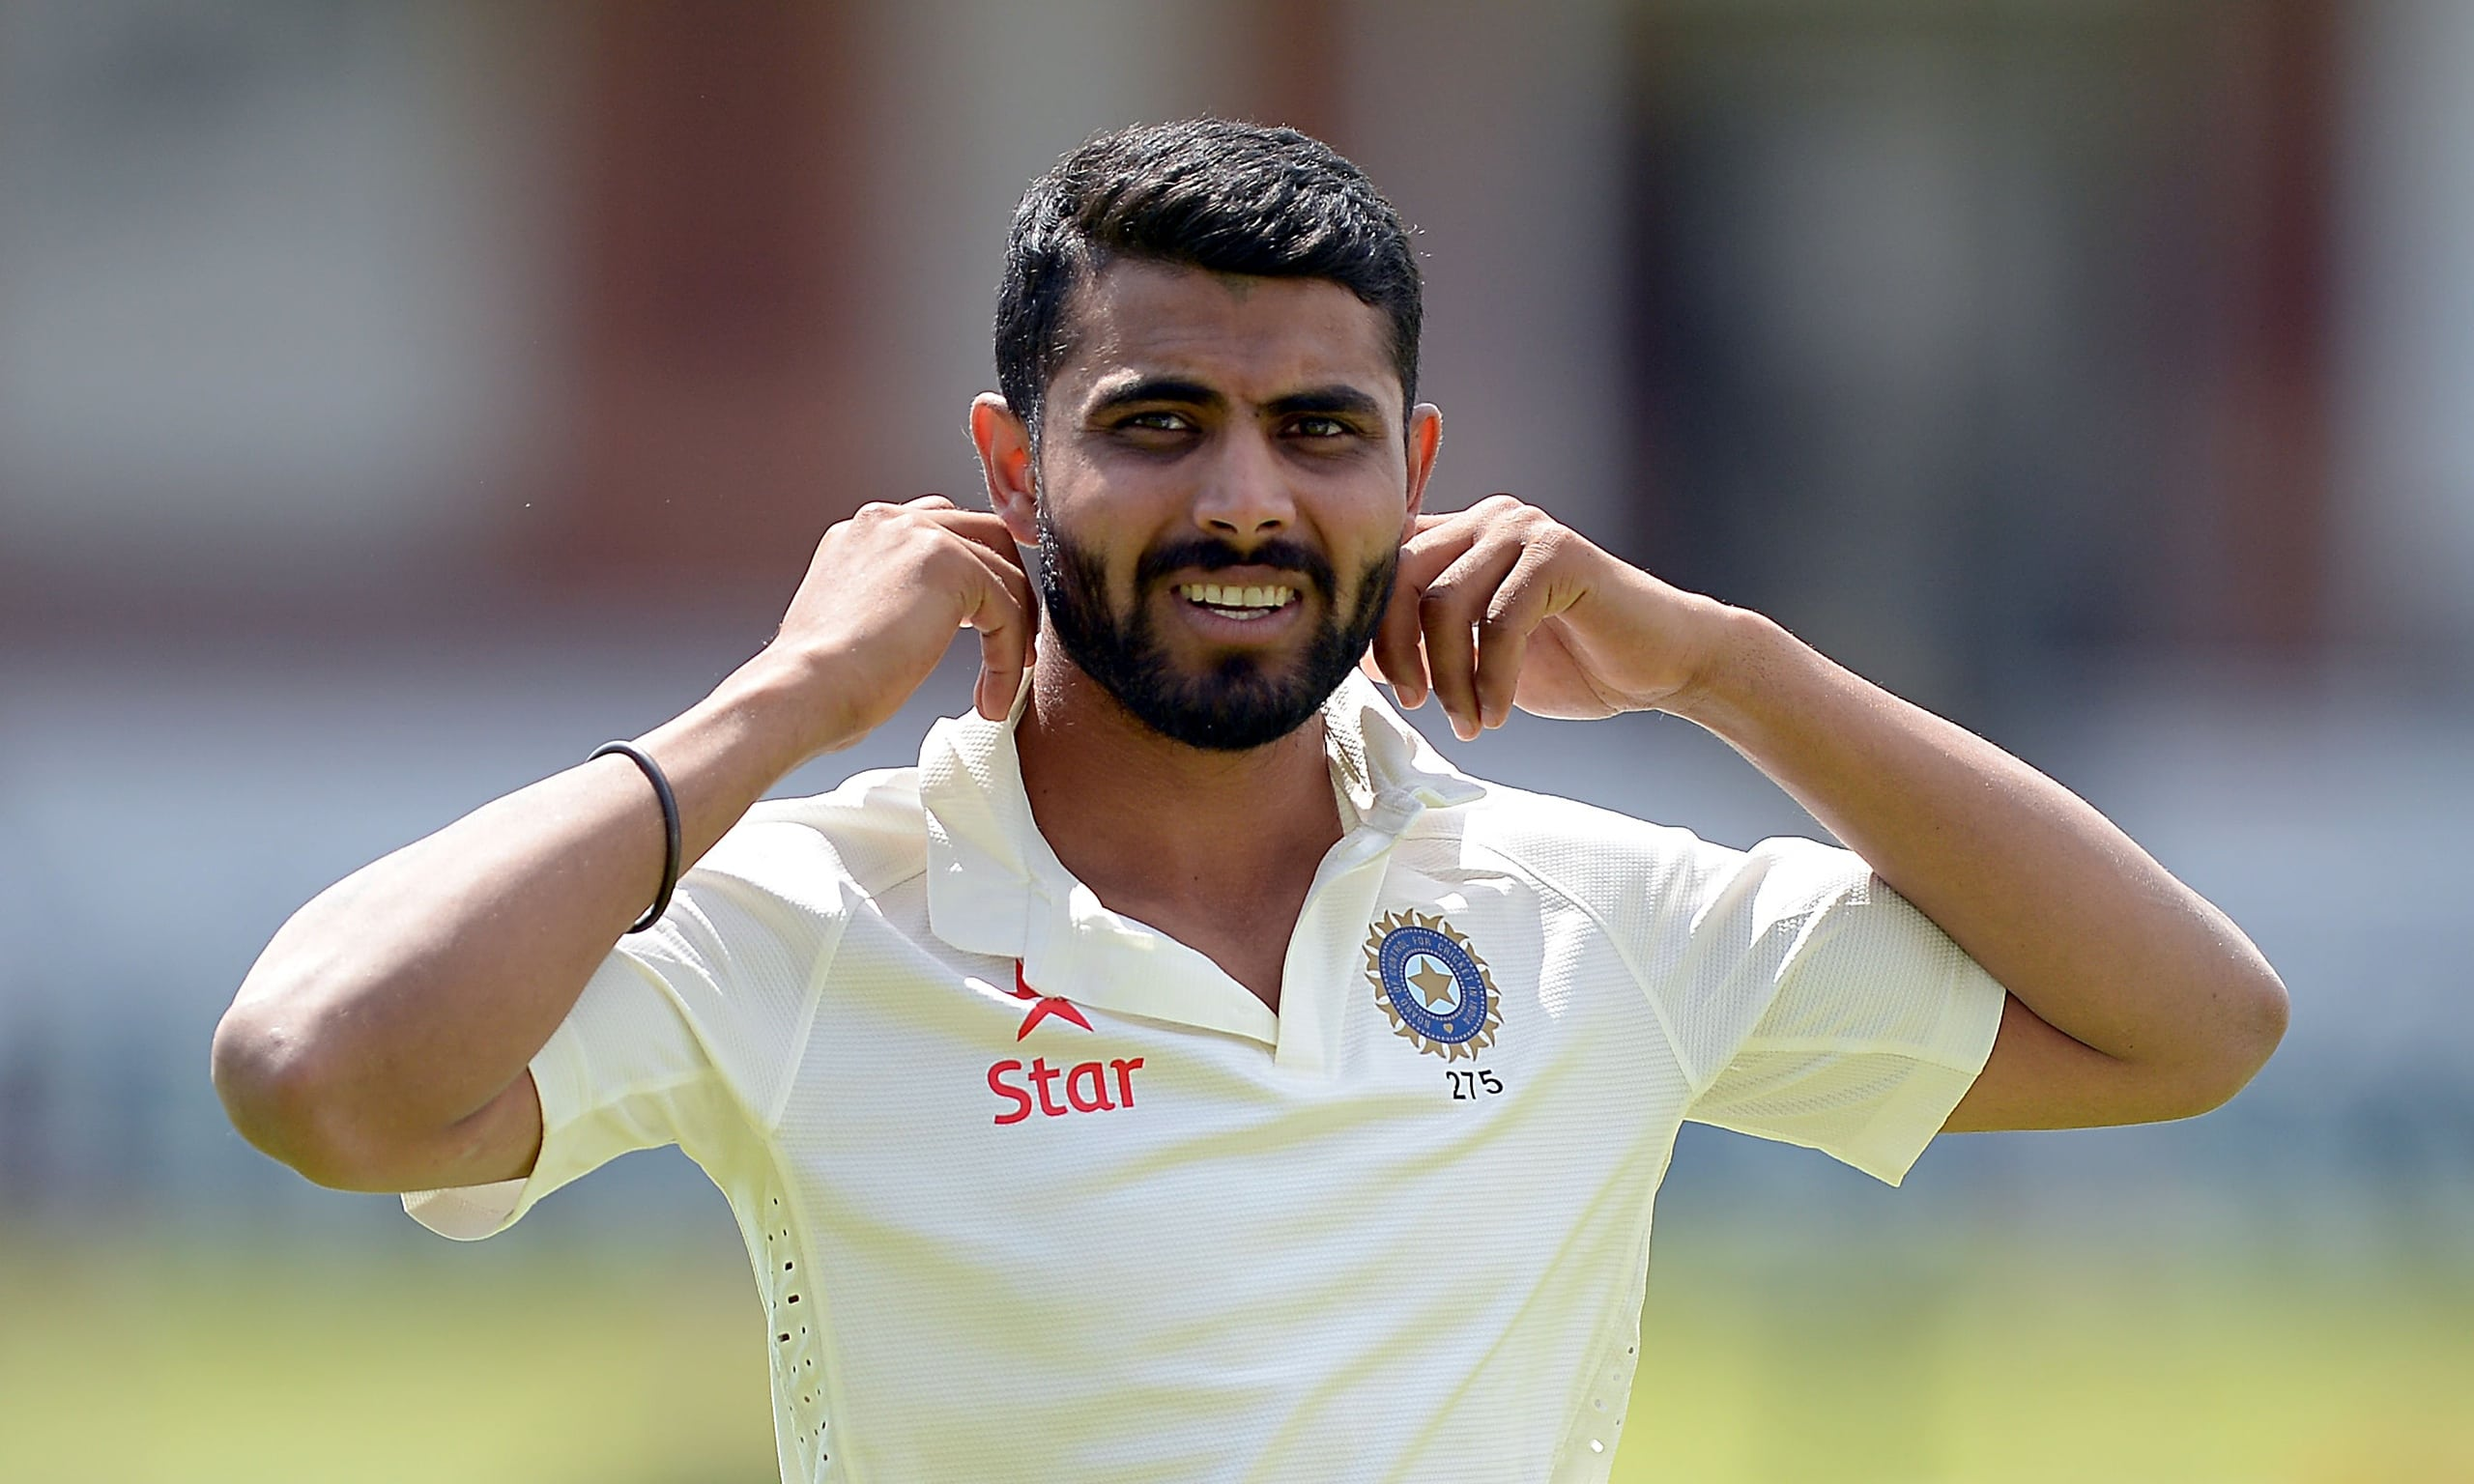 Must Read: An Open Letter to Sir Ravindra Jadeja